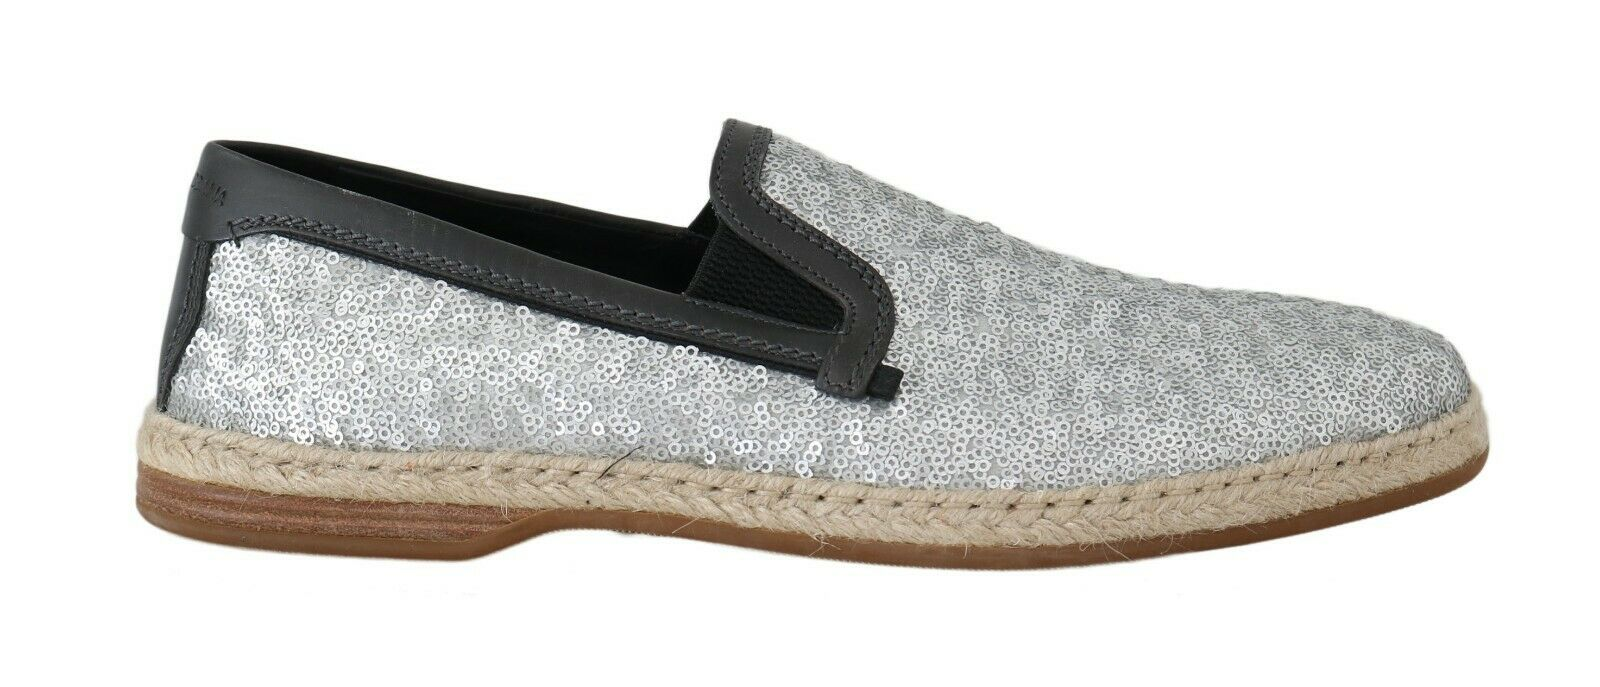 Dolce & Gabbana Men's Leather Sequined Loafers Silver MV2189 - EU39/US6